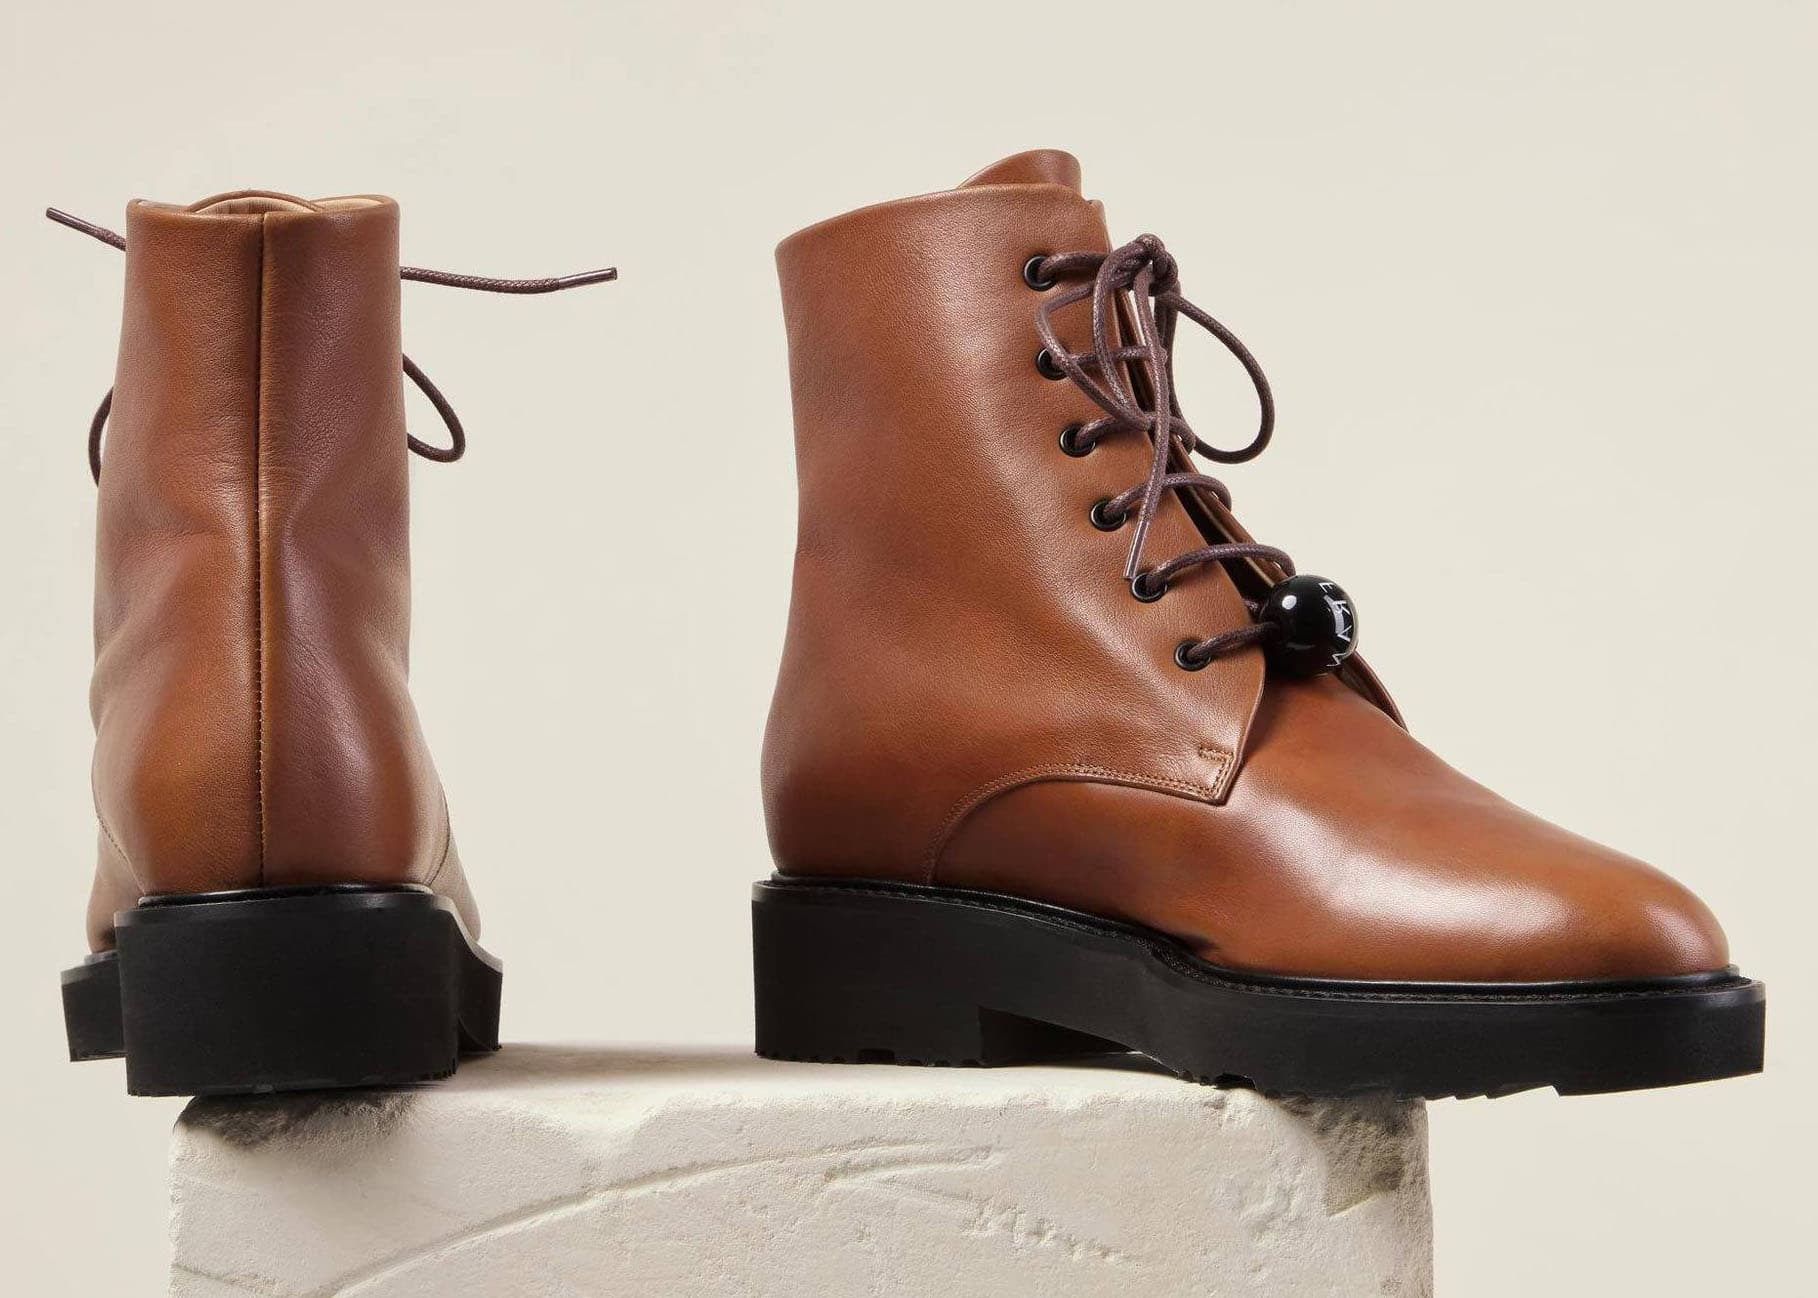 The Dear Frances Park features supple leather upper with sturdy chunky rubber sole